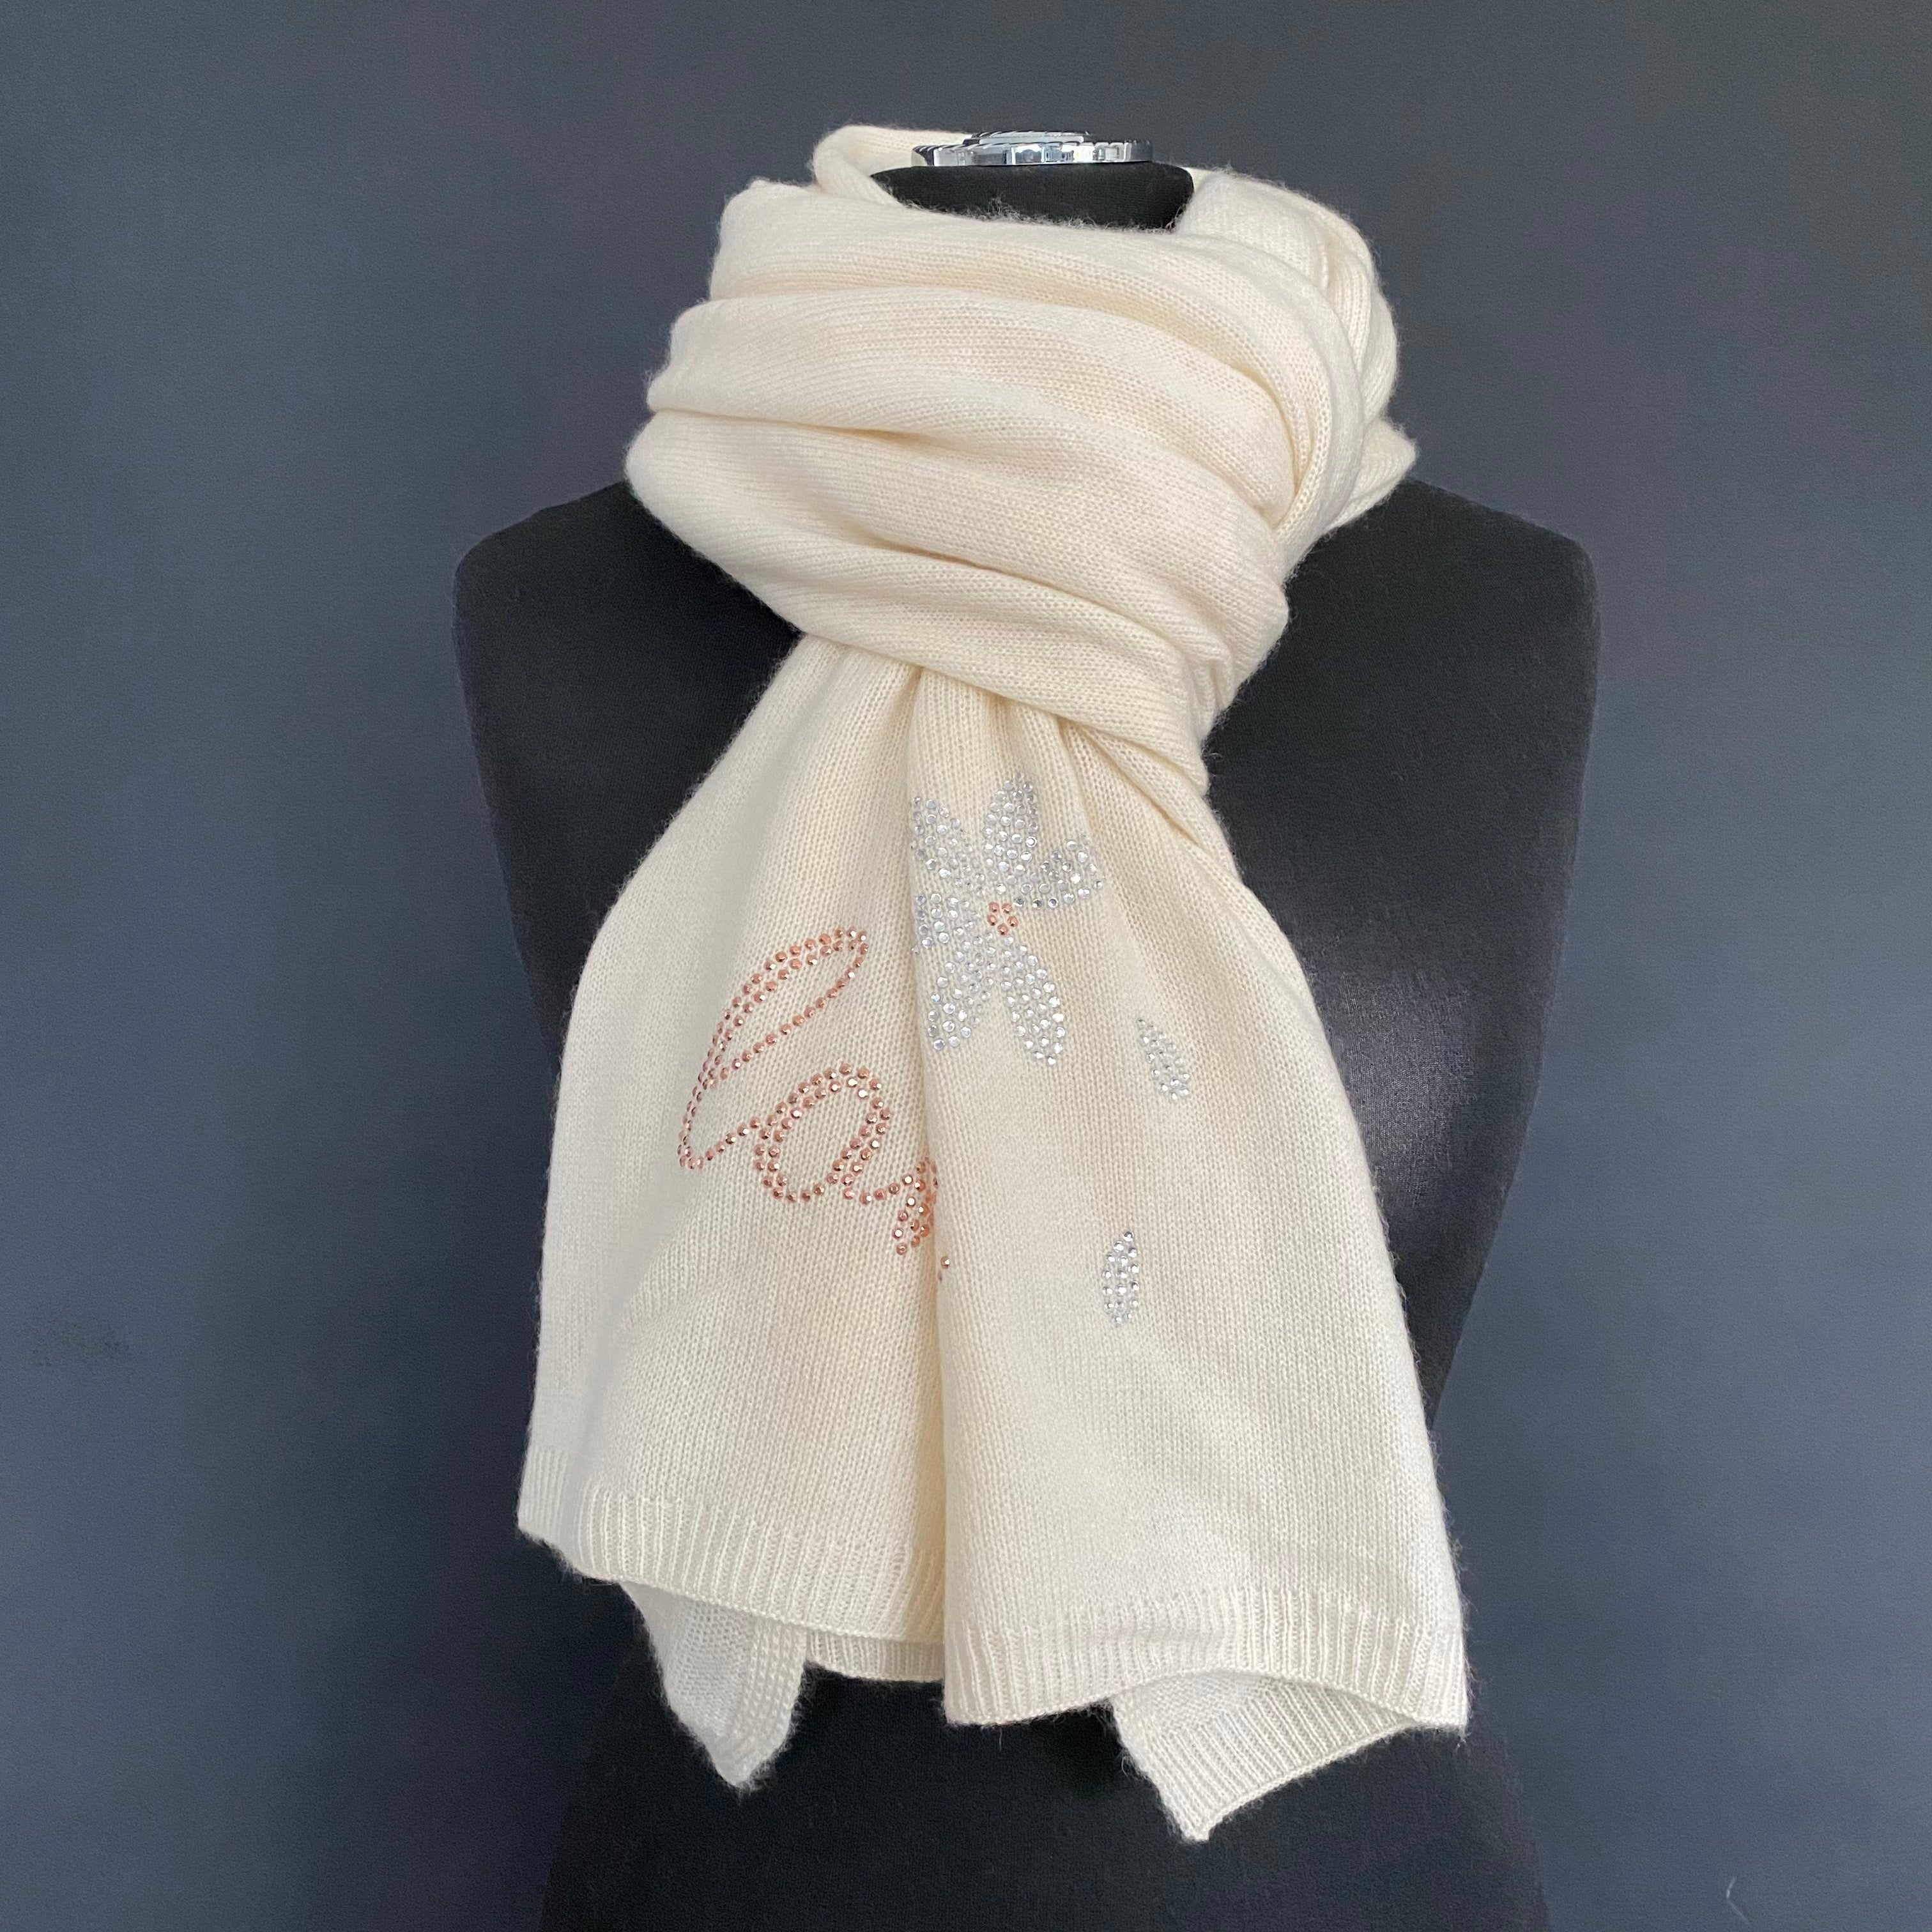 XL Chunky, knitted cashmere travel wrap LOVE ME, LOVE ME NOT...(off white)